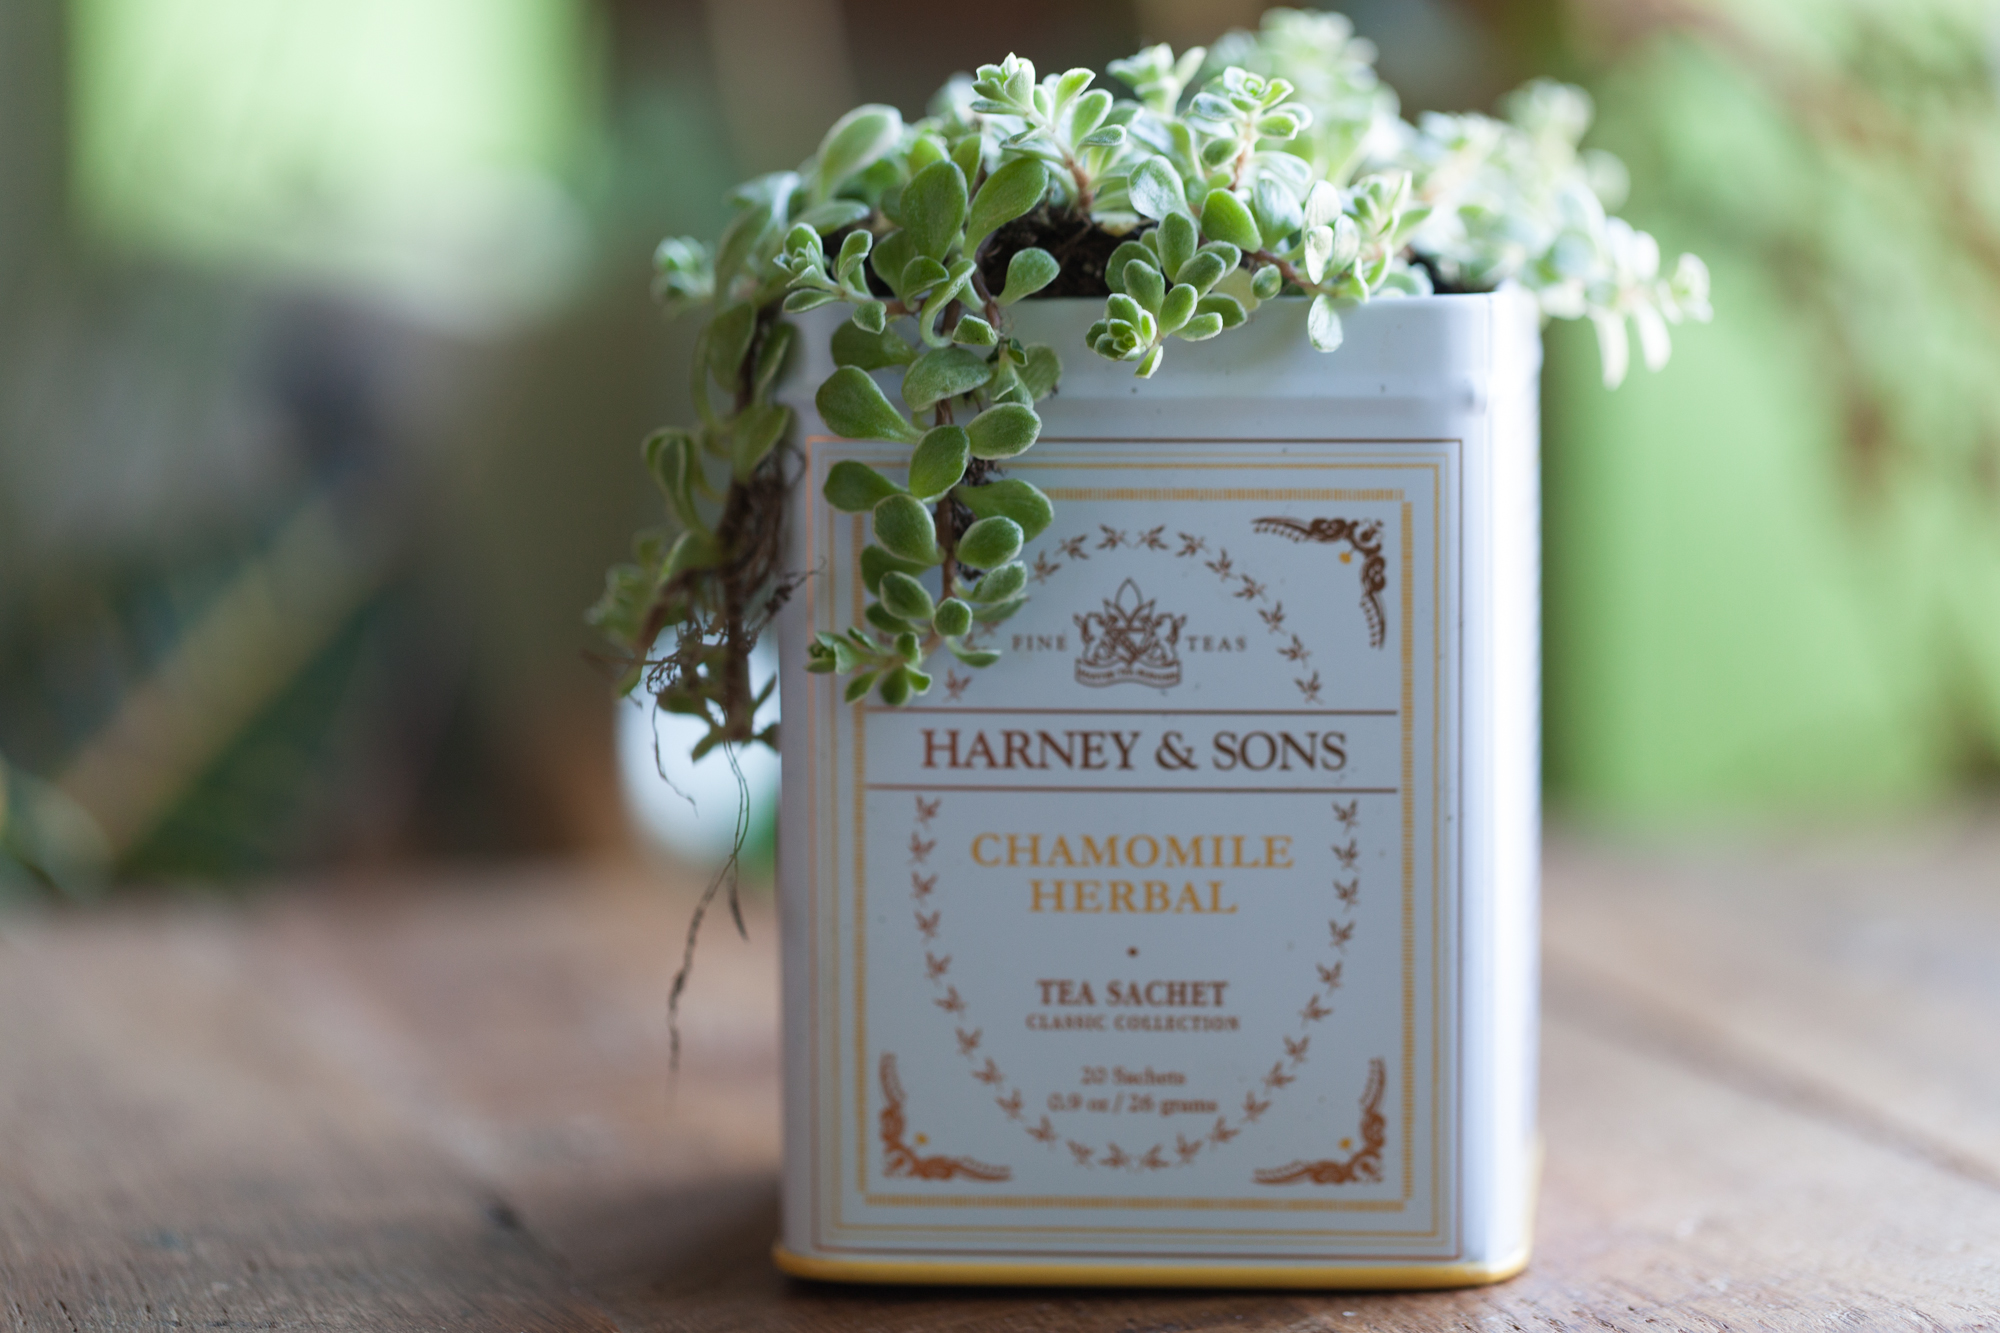 Succulent in a upcycled Harney & Sons tea canister.